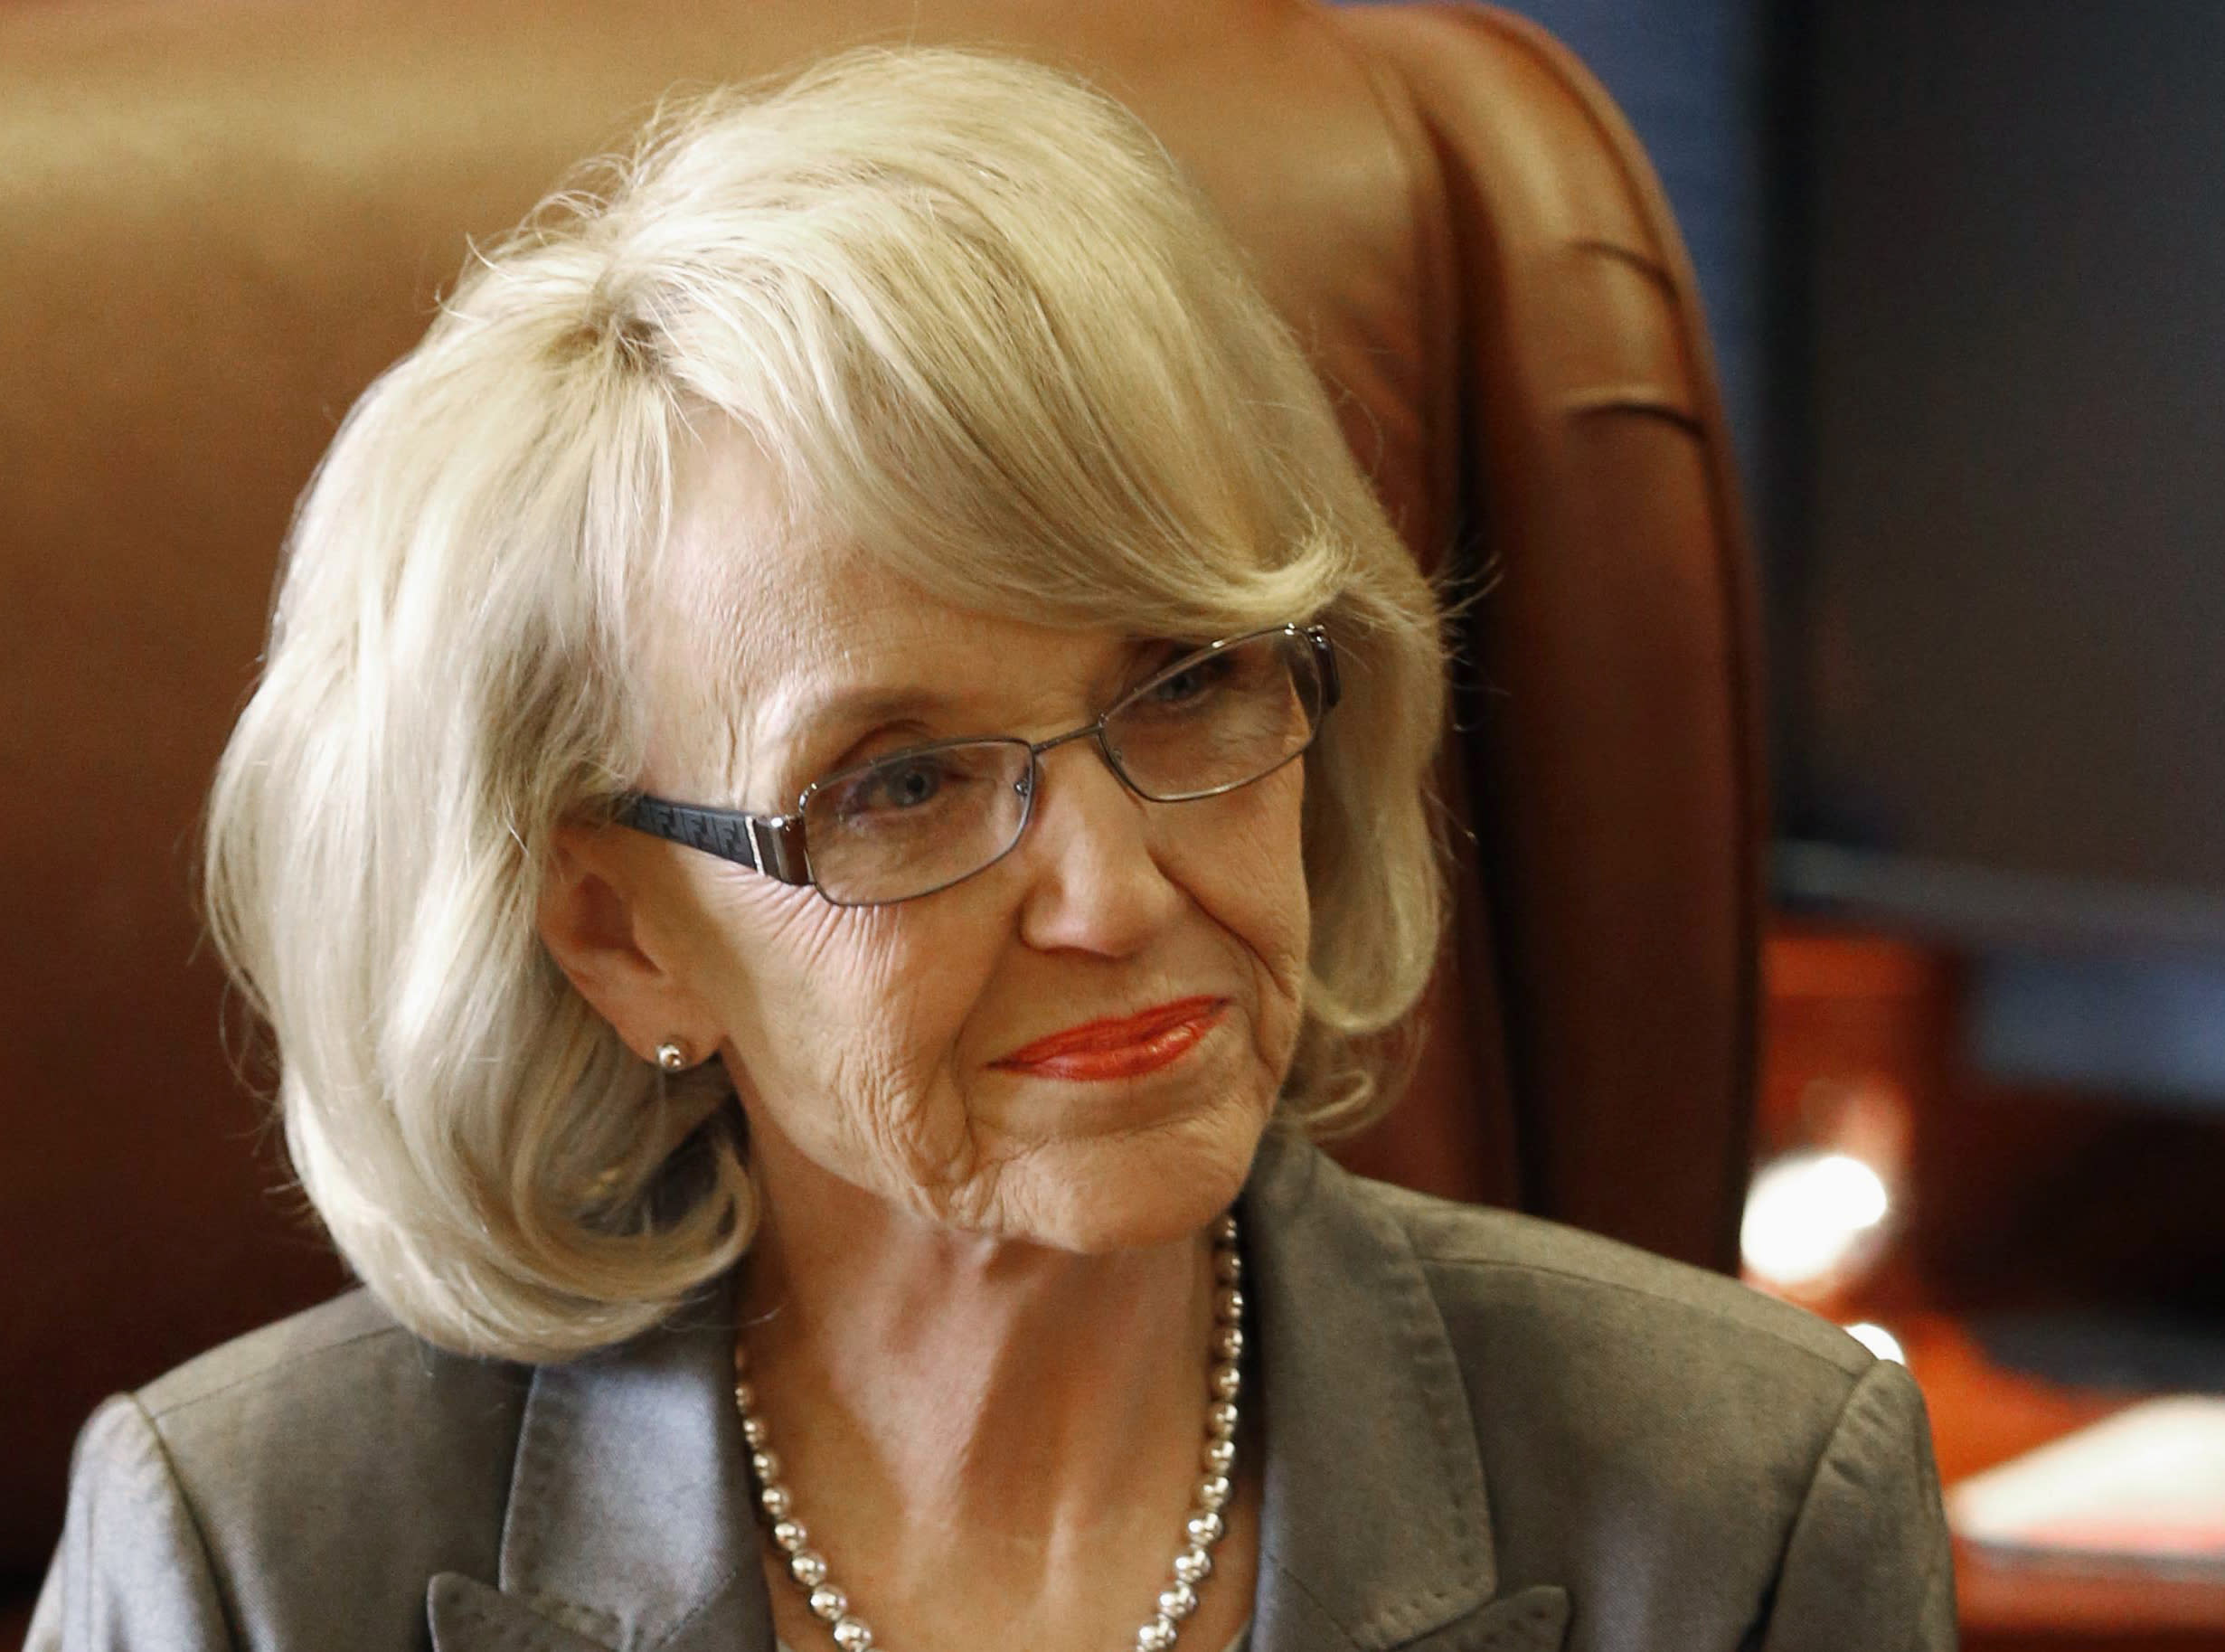 FILE - This Jan. 10, 2013 file photo show Arizona Gov. Jan Brewer in her office at the Capitol in Phoenix. Governors who reject health insurance for the poor under the federal health care overhaul could wind up in a politically awkward position on immigration: A quirk in the law means some U.S. citizens would be forced to go without coverage, while legal immigrants residing in the same state could still get it. Arizona officials called attention to the problem last week, when Brewer announced she would accept the expansion of Medicaid offered under Obama's law. Brewer had been a leading opponent of the overhaul, and her decision got widespread attention. Budget documents cited the immigration glitch as one of her reasons. (AP Photo/Matt York, File)